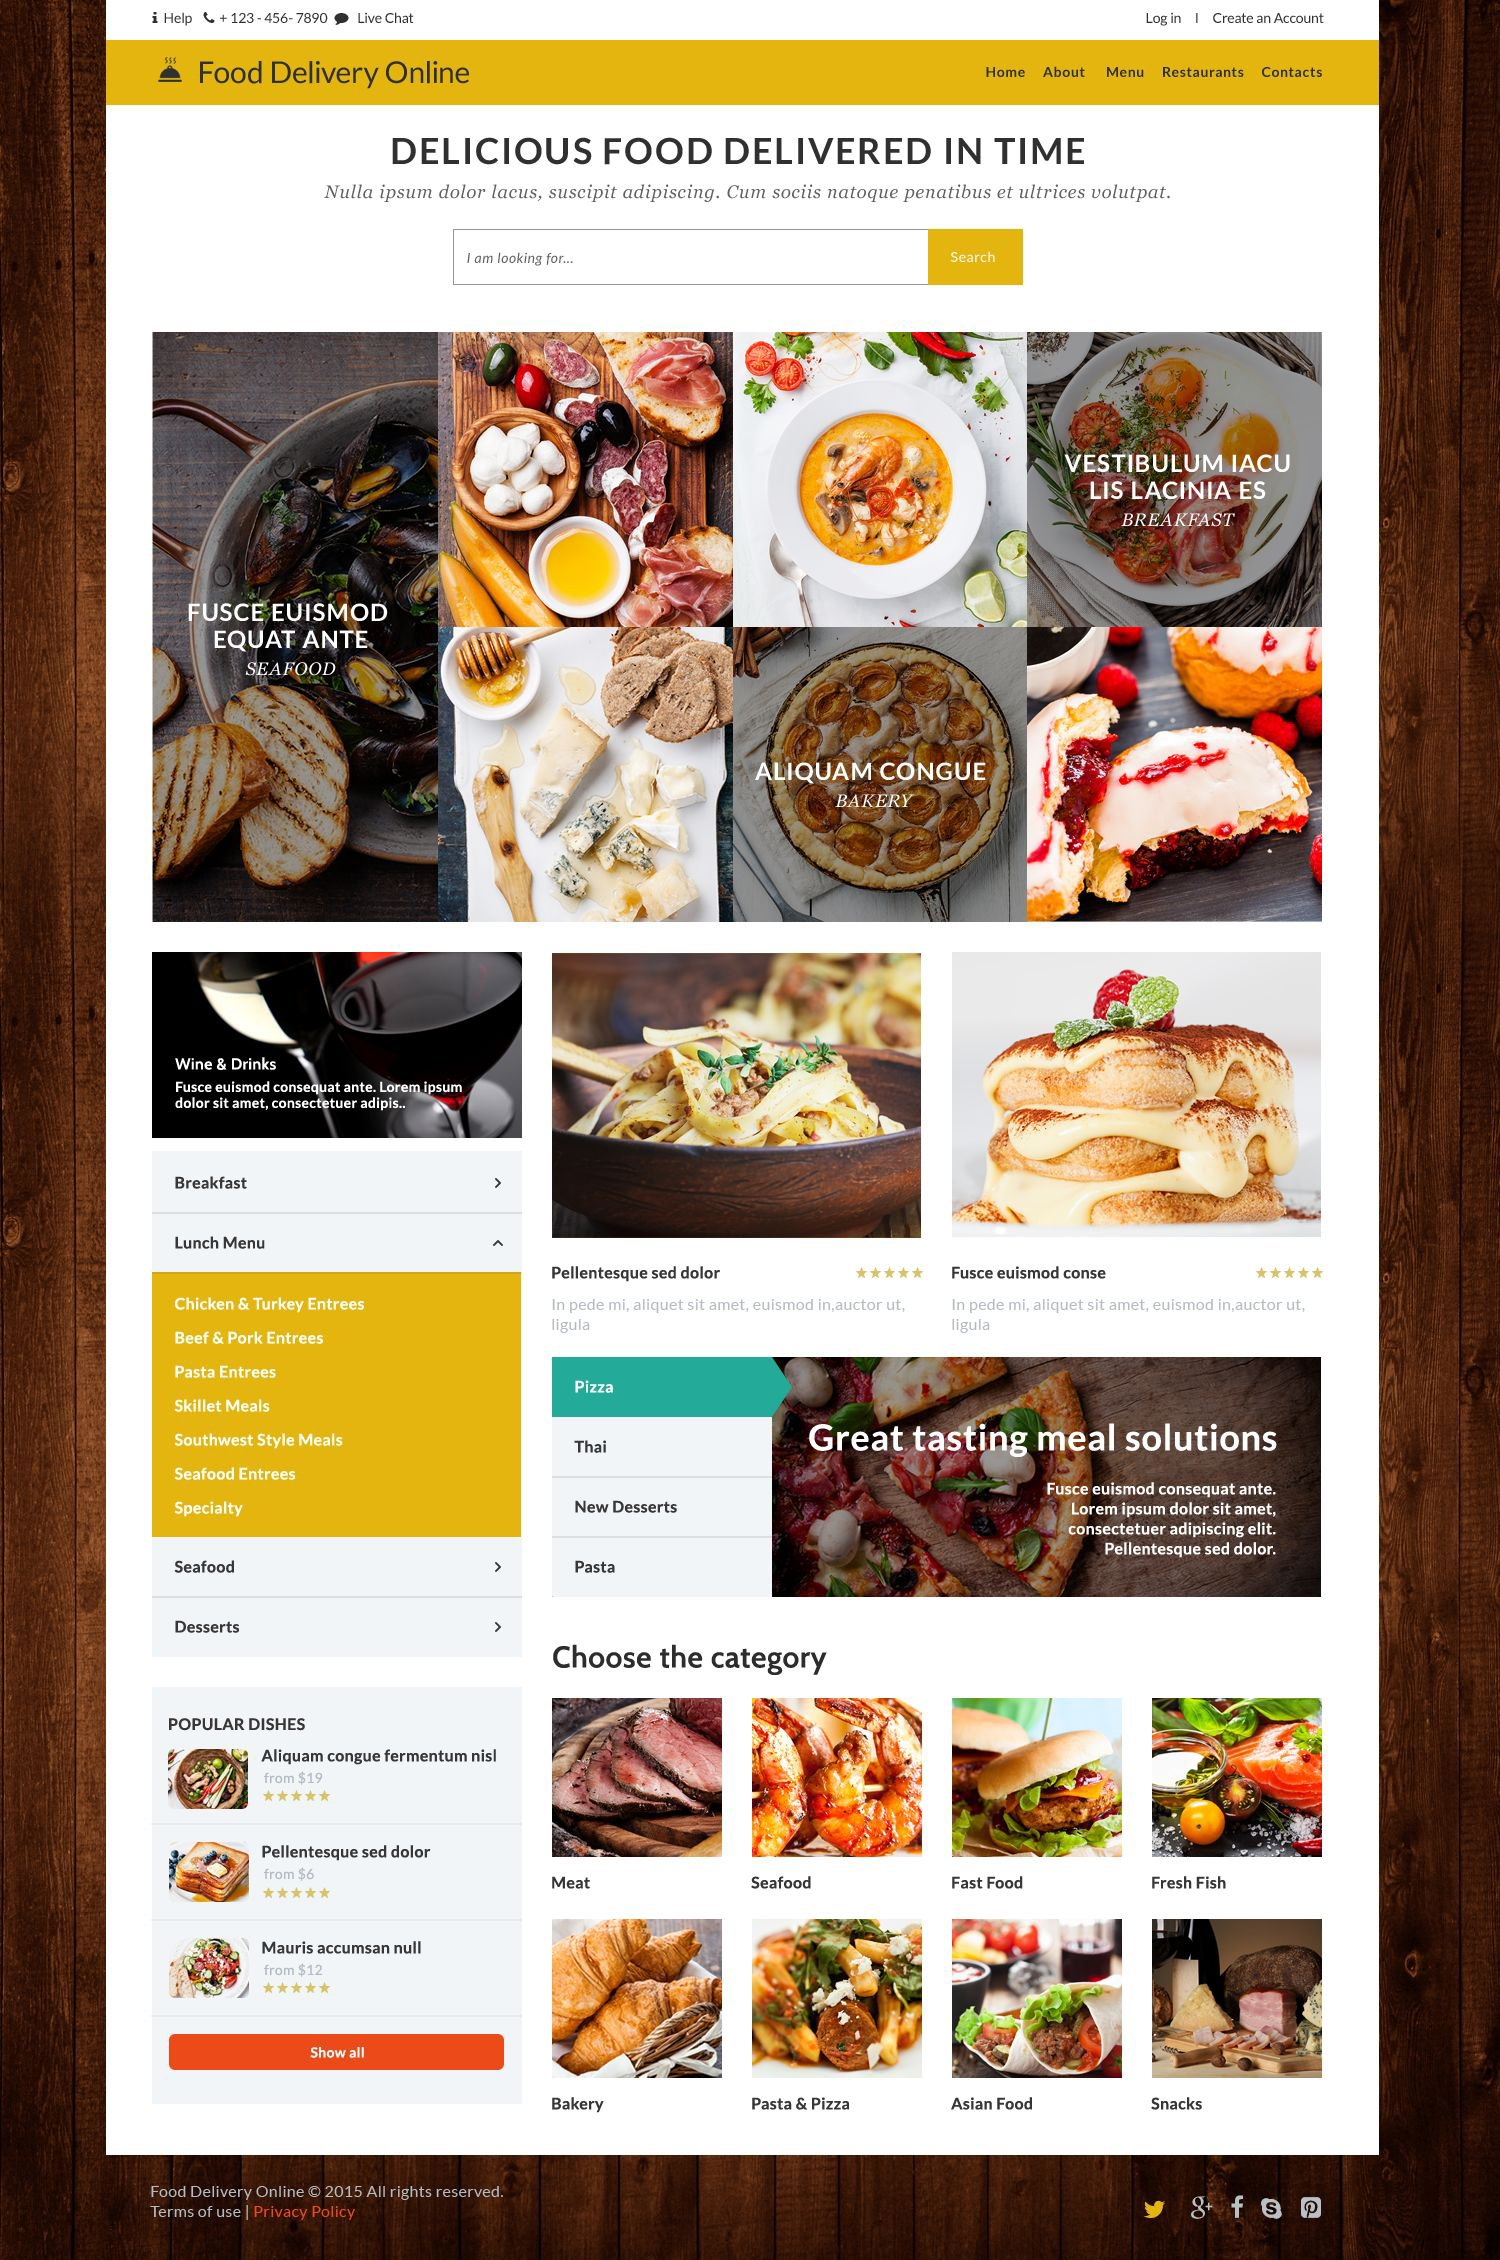 The Food Delivery Bootstrap Design 53360, one of the best website templates of its kind (most popular, maintenance services), also known as food delivery website template, online catering company website template, service website template, food website template, drinks website template, equipment website template, services website template, specials website template, menu website template, cake website template, catering website template, delivery website template, lunch website template, dinner website template, products website template, tasty website template, fruits website template, sweets website template, cookies website template, receipts and related with food delivery, online catering company, service, food, drinks, equipment, services, specials, menu, cake, catering, delivery, lunch, dinner, products, tasty, fruits, sweets, cookies, receipts, etc.